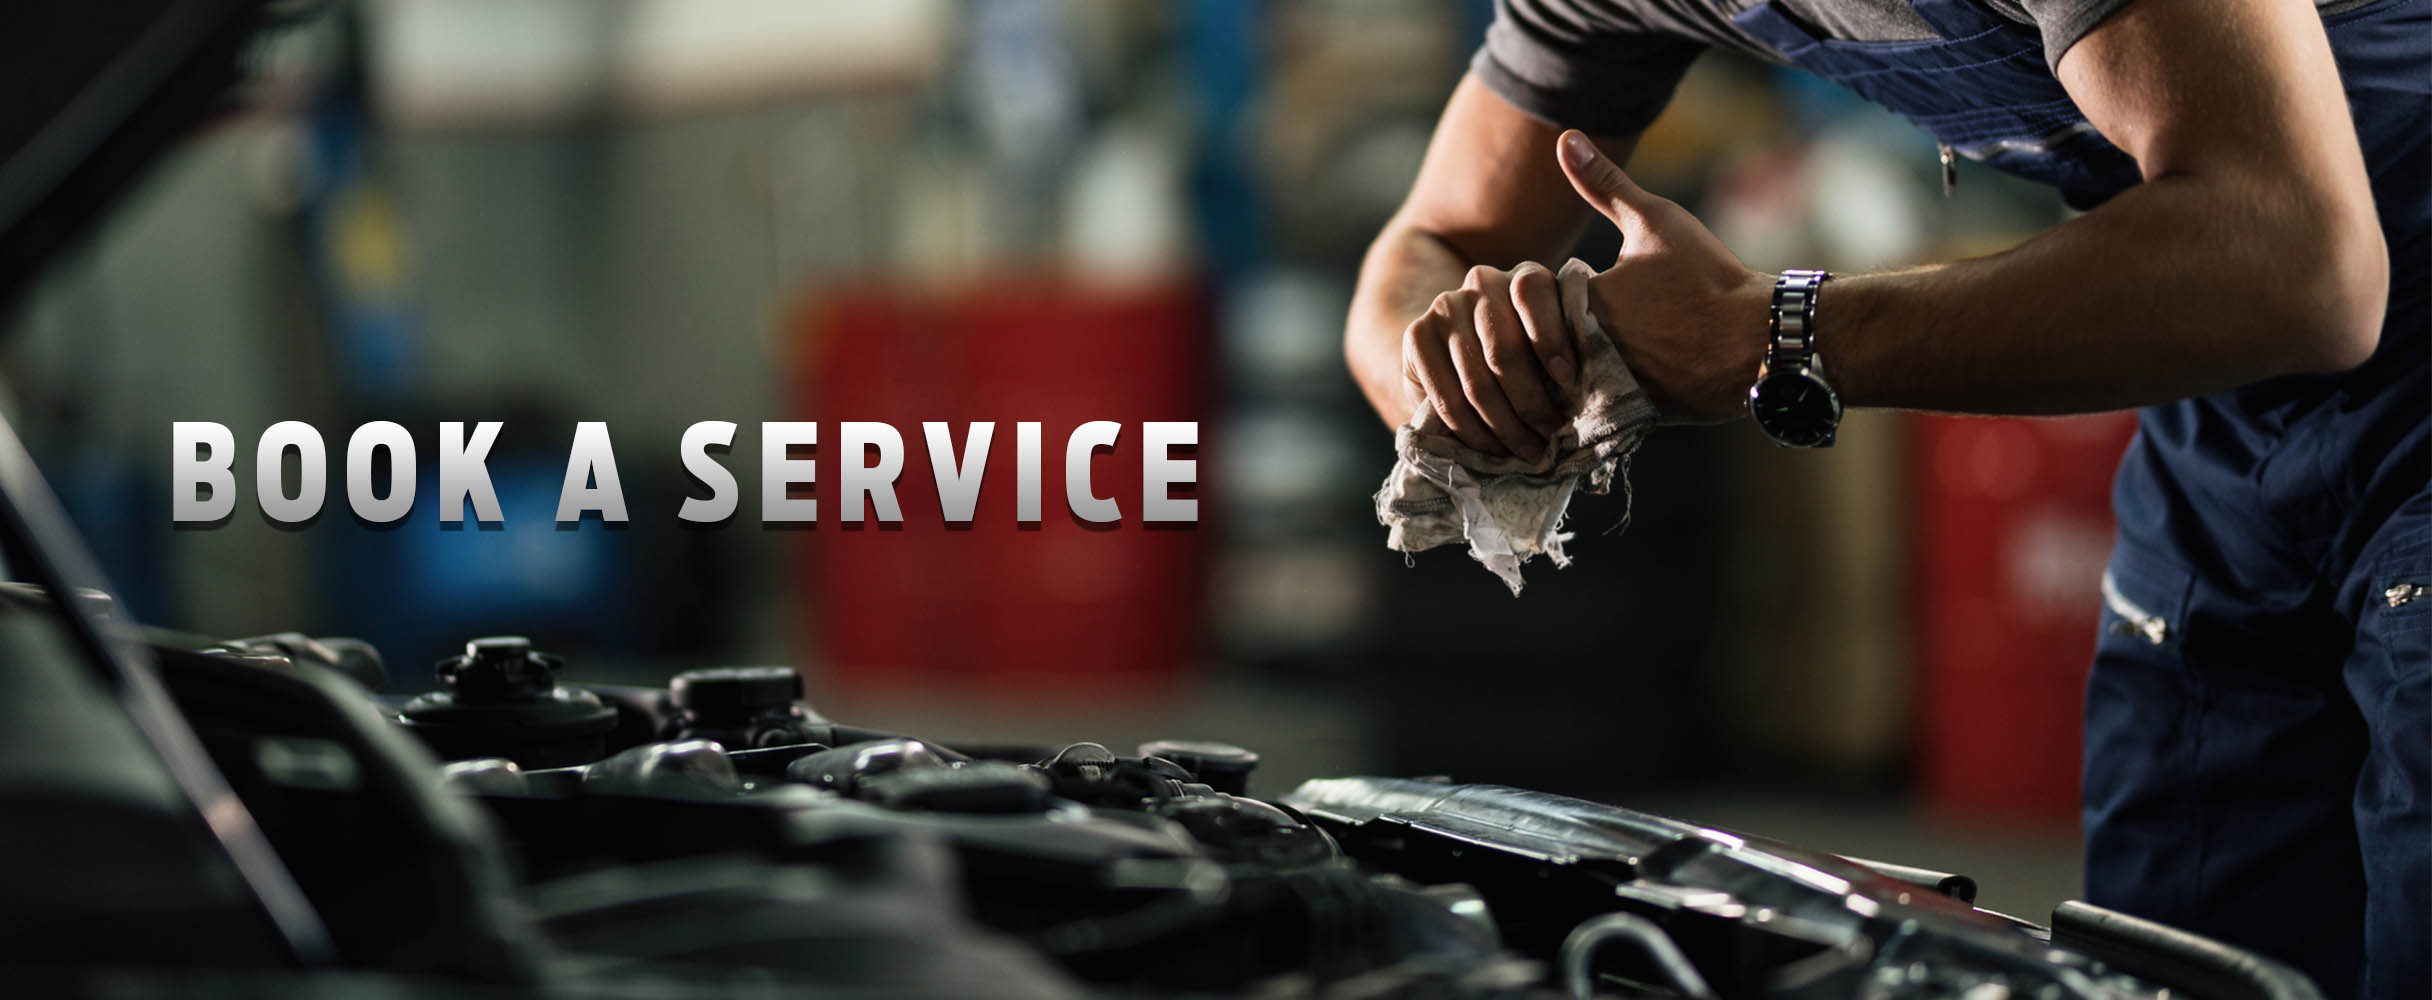 book a service at ford francistown